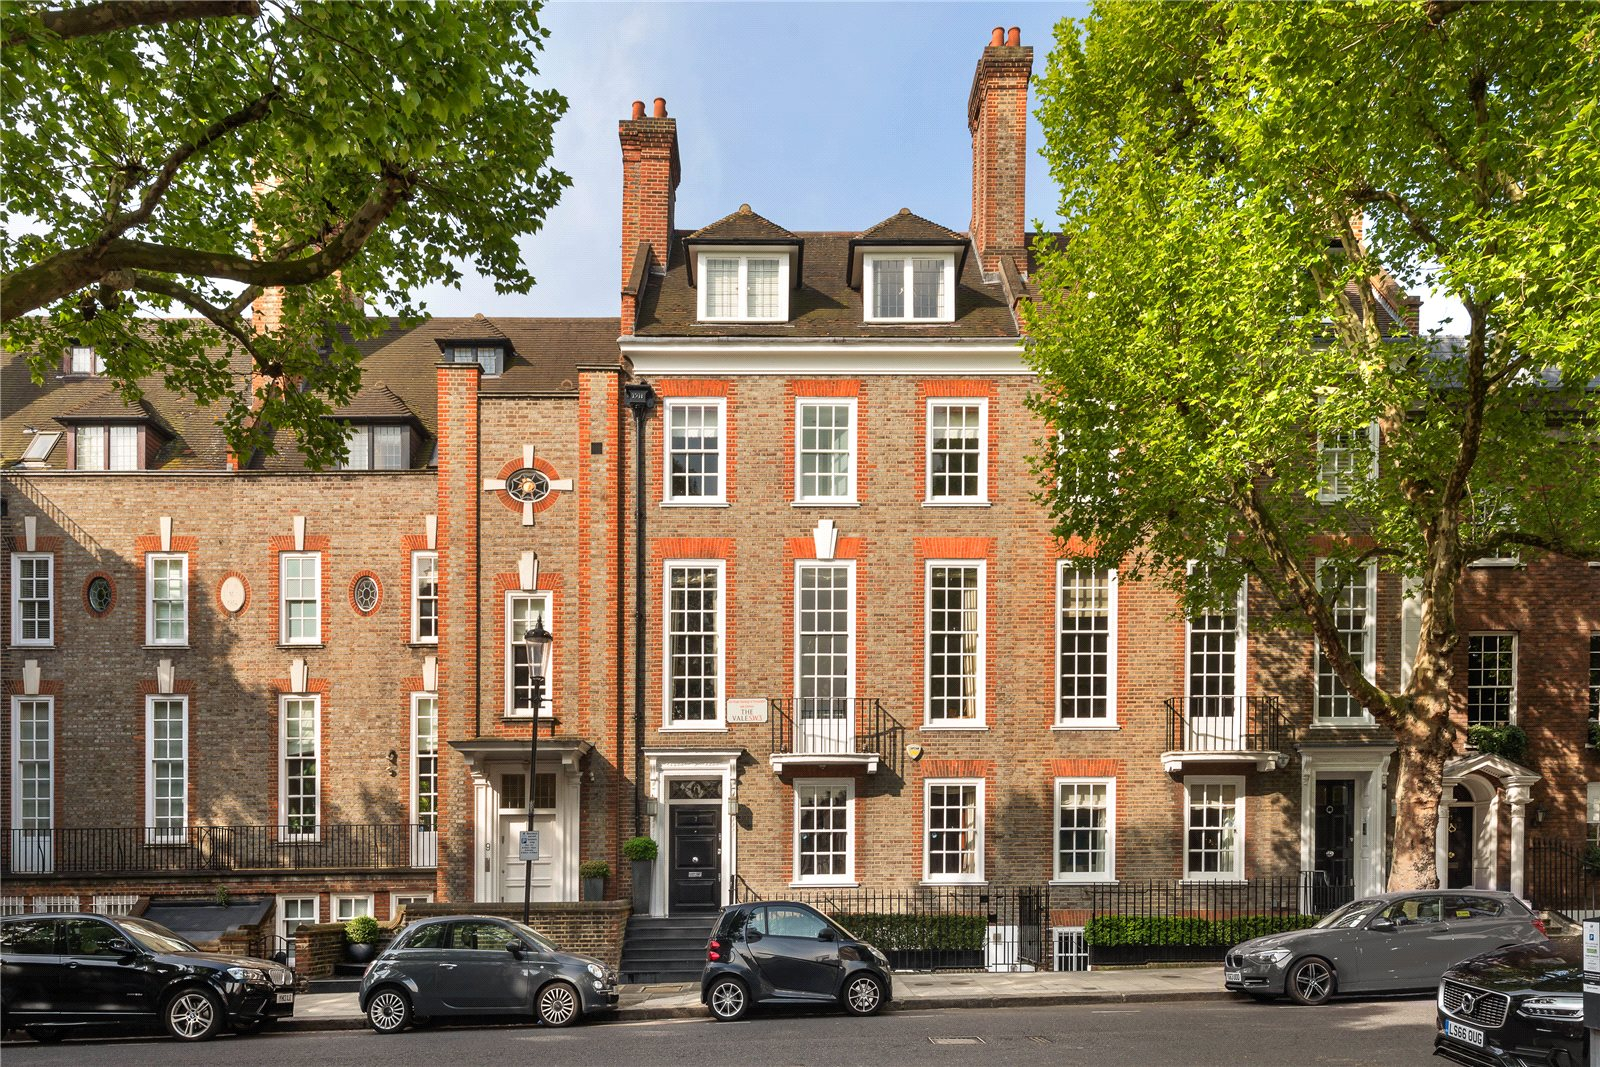 Single Family Home for Sale at The Vale, Chelsea, London, SW3 Chelsea, London, England